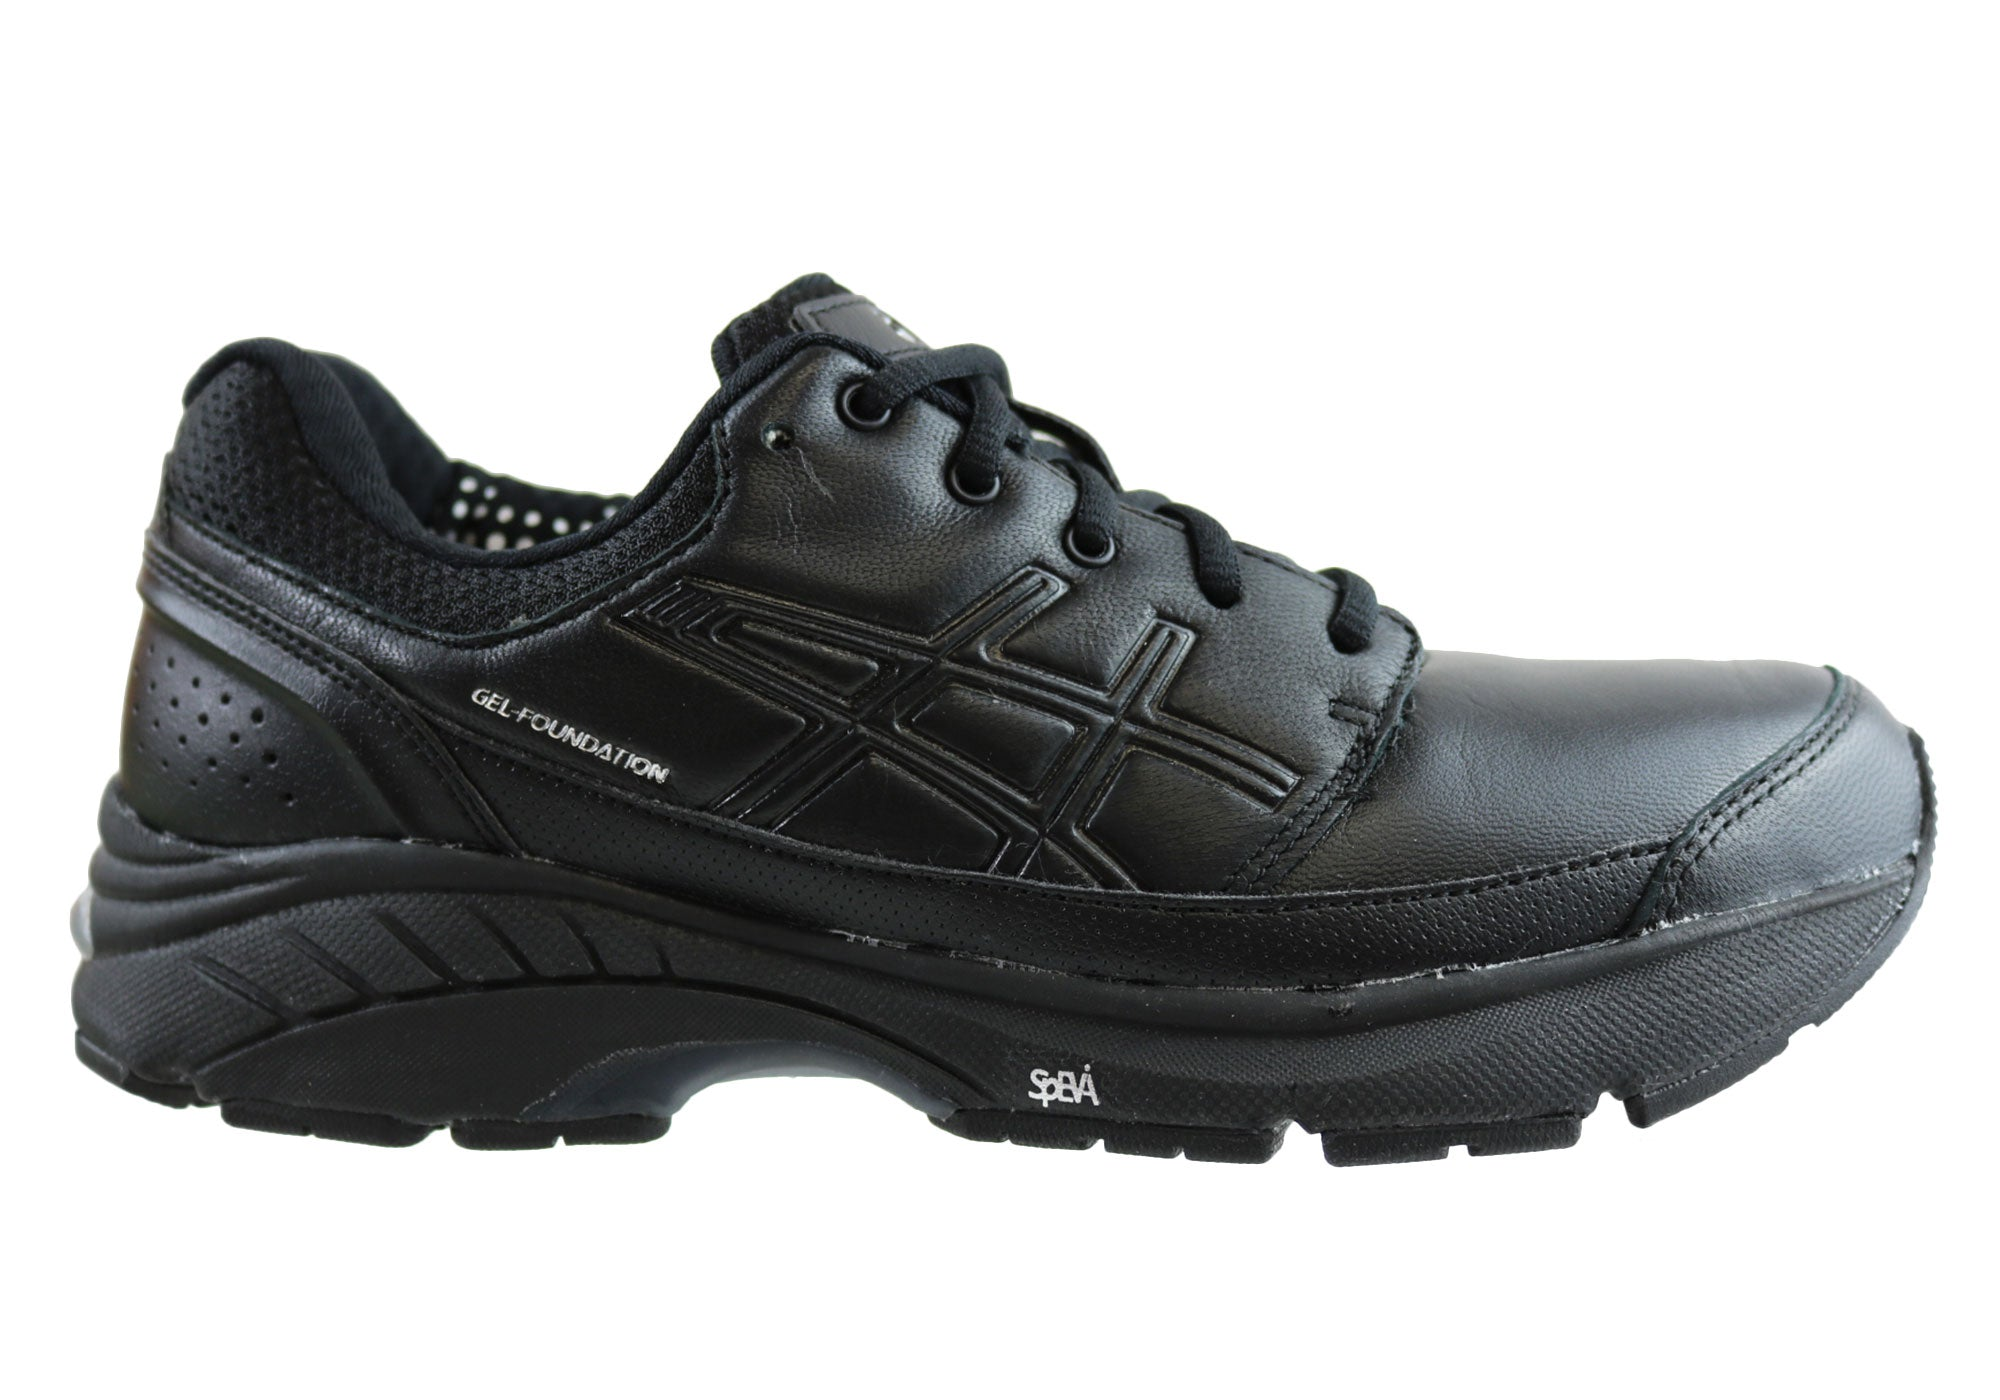 Details about Asics Womens Gel Foundation Workplace Extra Wide (2E) Extra Wide ShopShoesAU